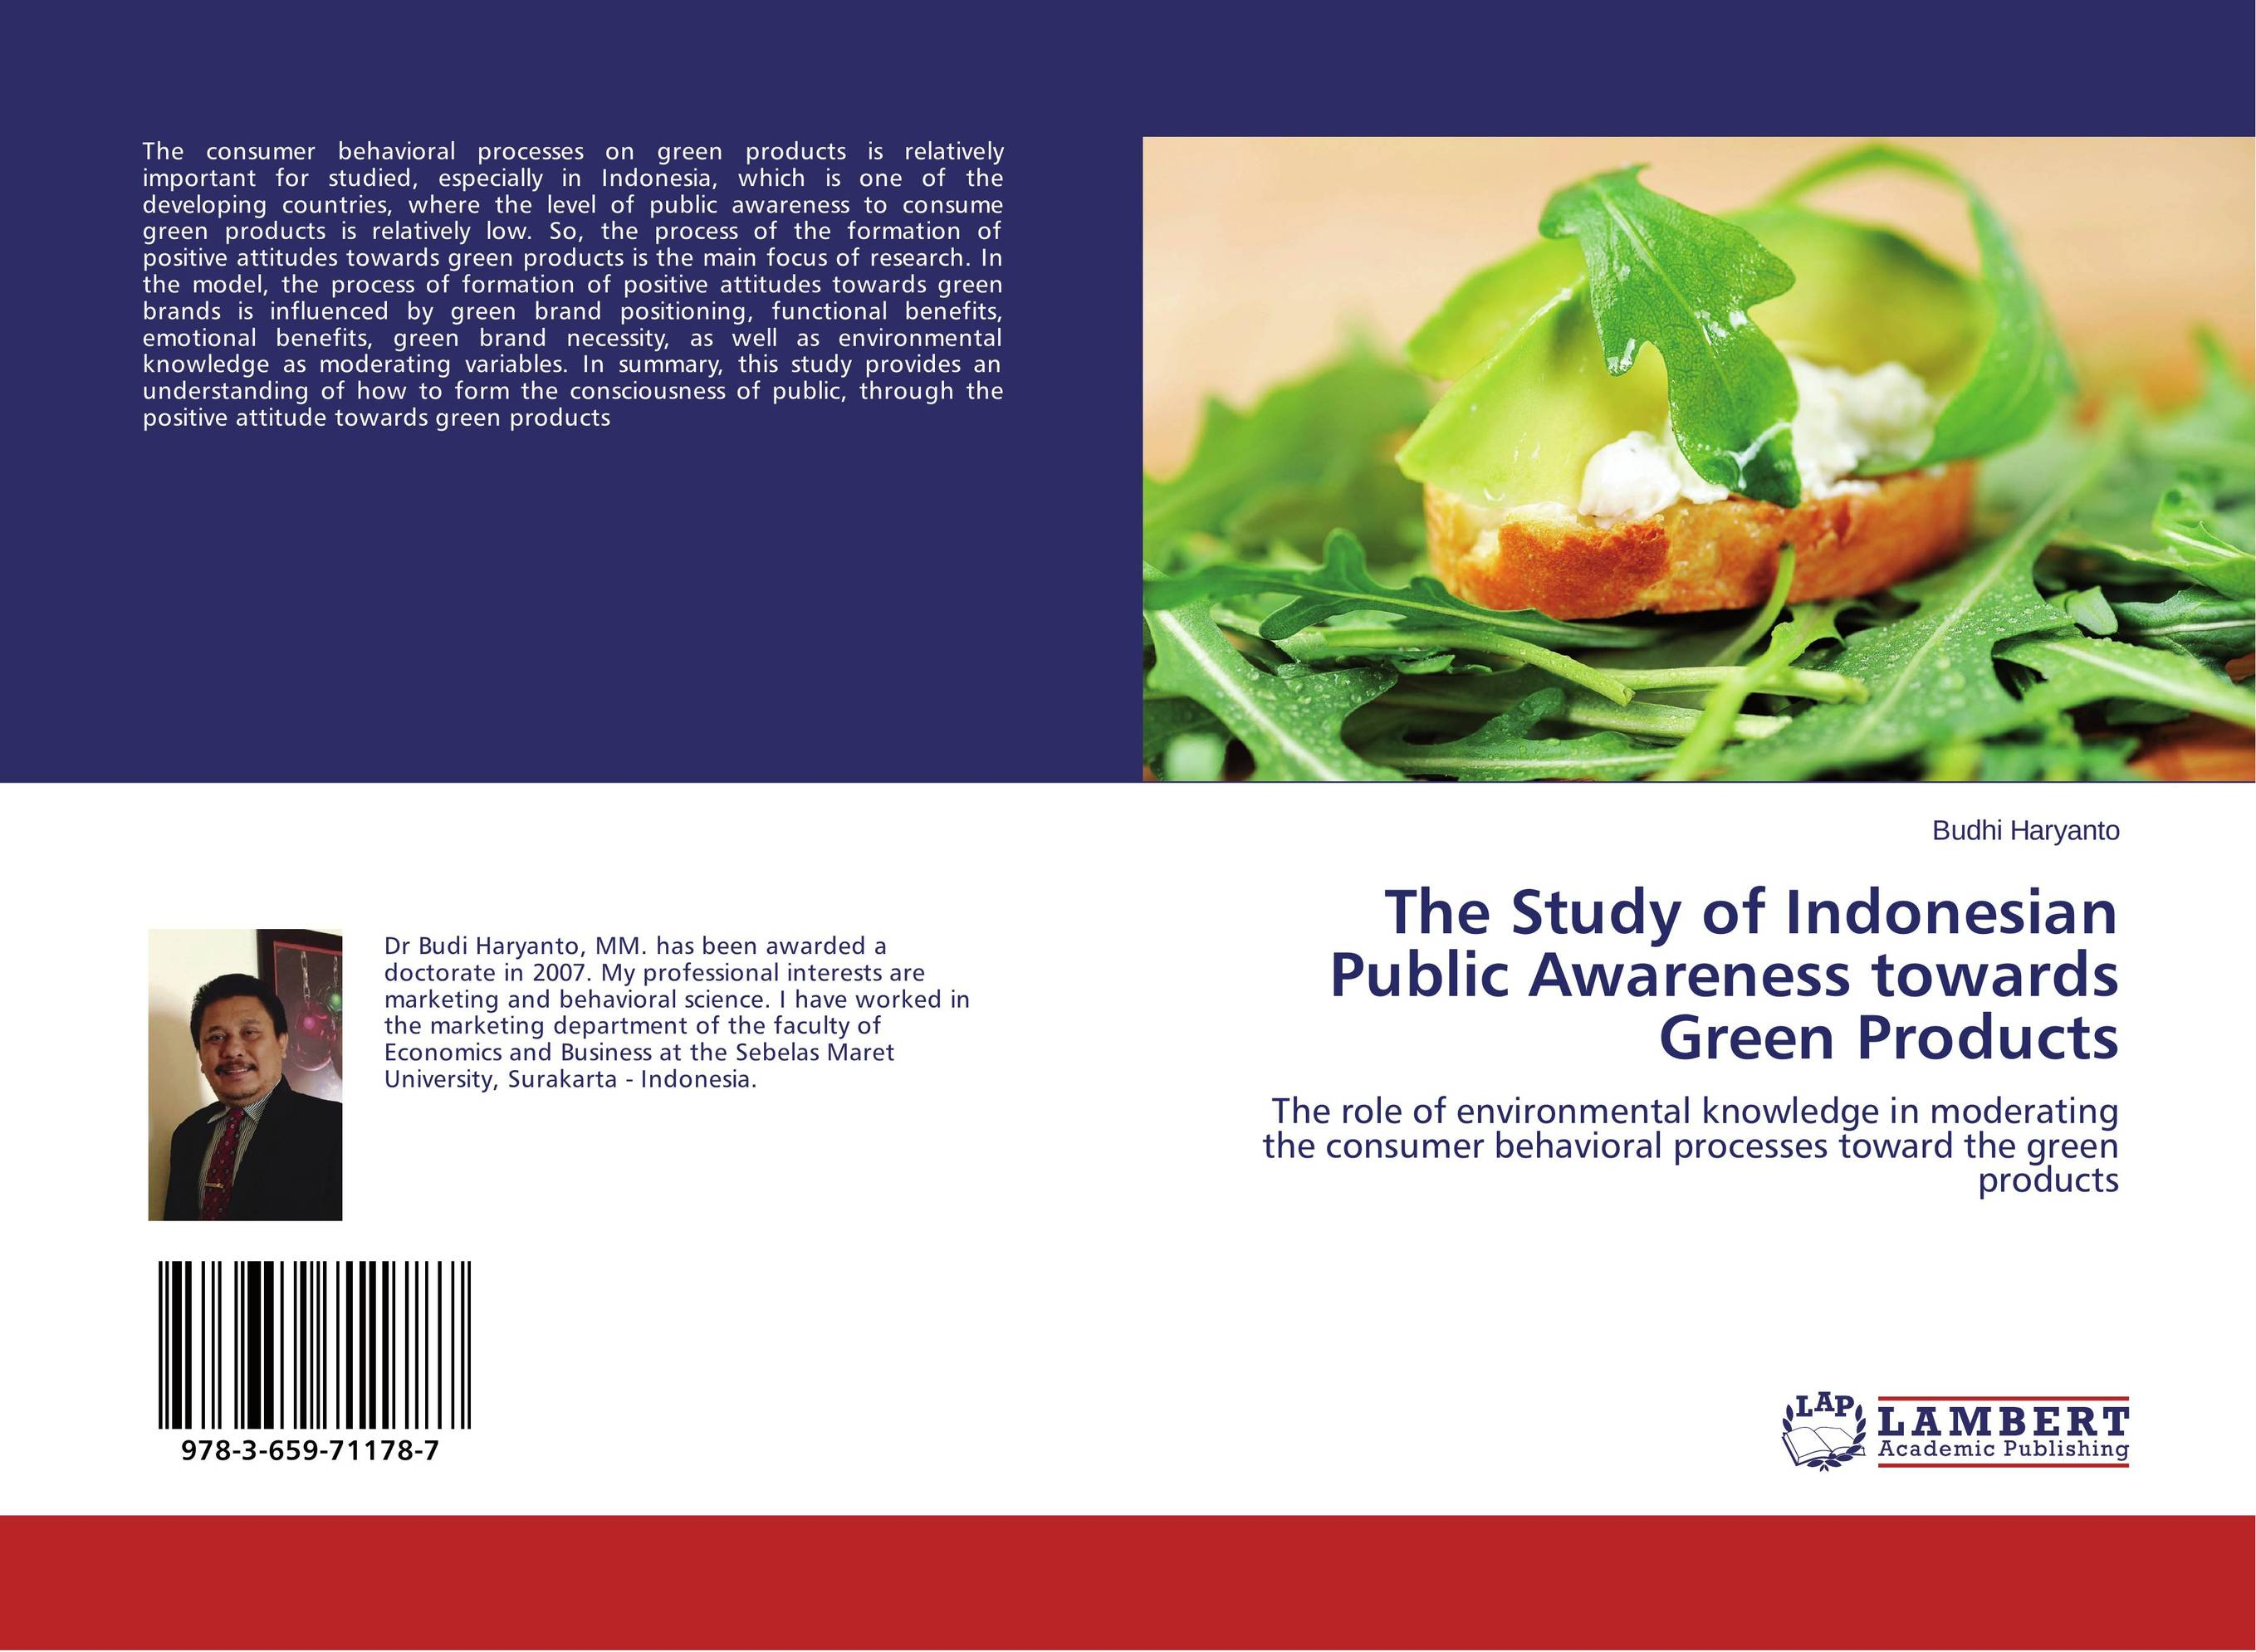 The Study of Indonesian Public Awareness towards Green Products the study of indonesian public awareness towards green products